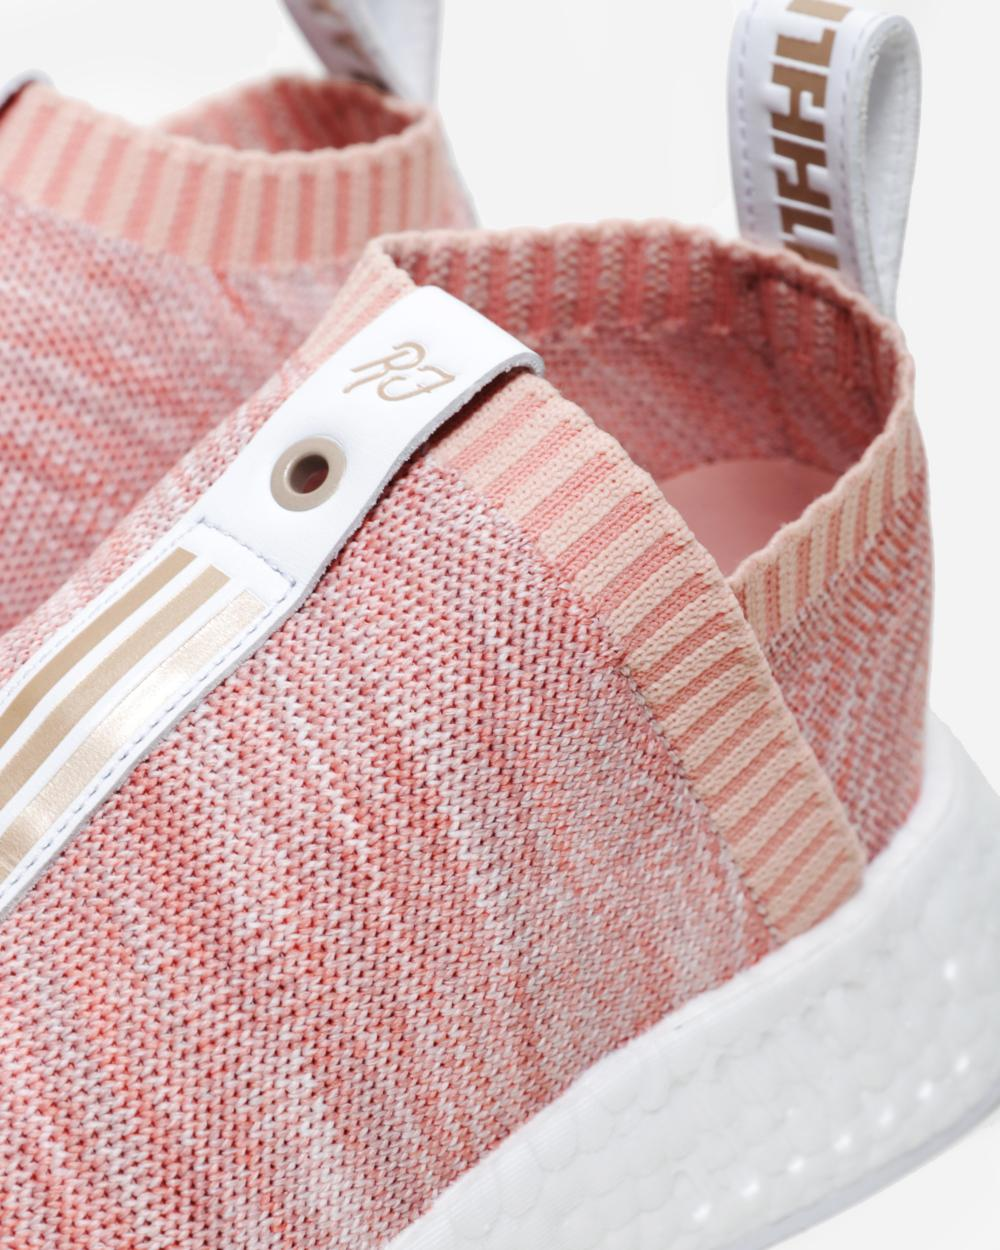 f34bac1ee845 NMD CS2 PK S.2. Kith X Naked Pink White Shoes Artemis Outlet